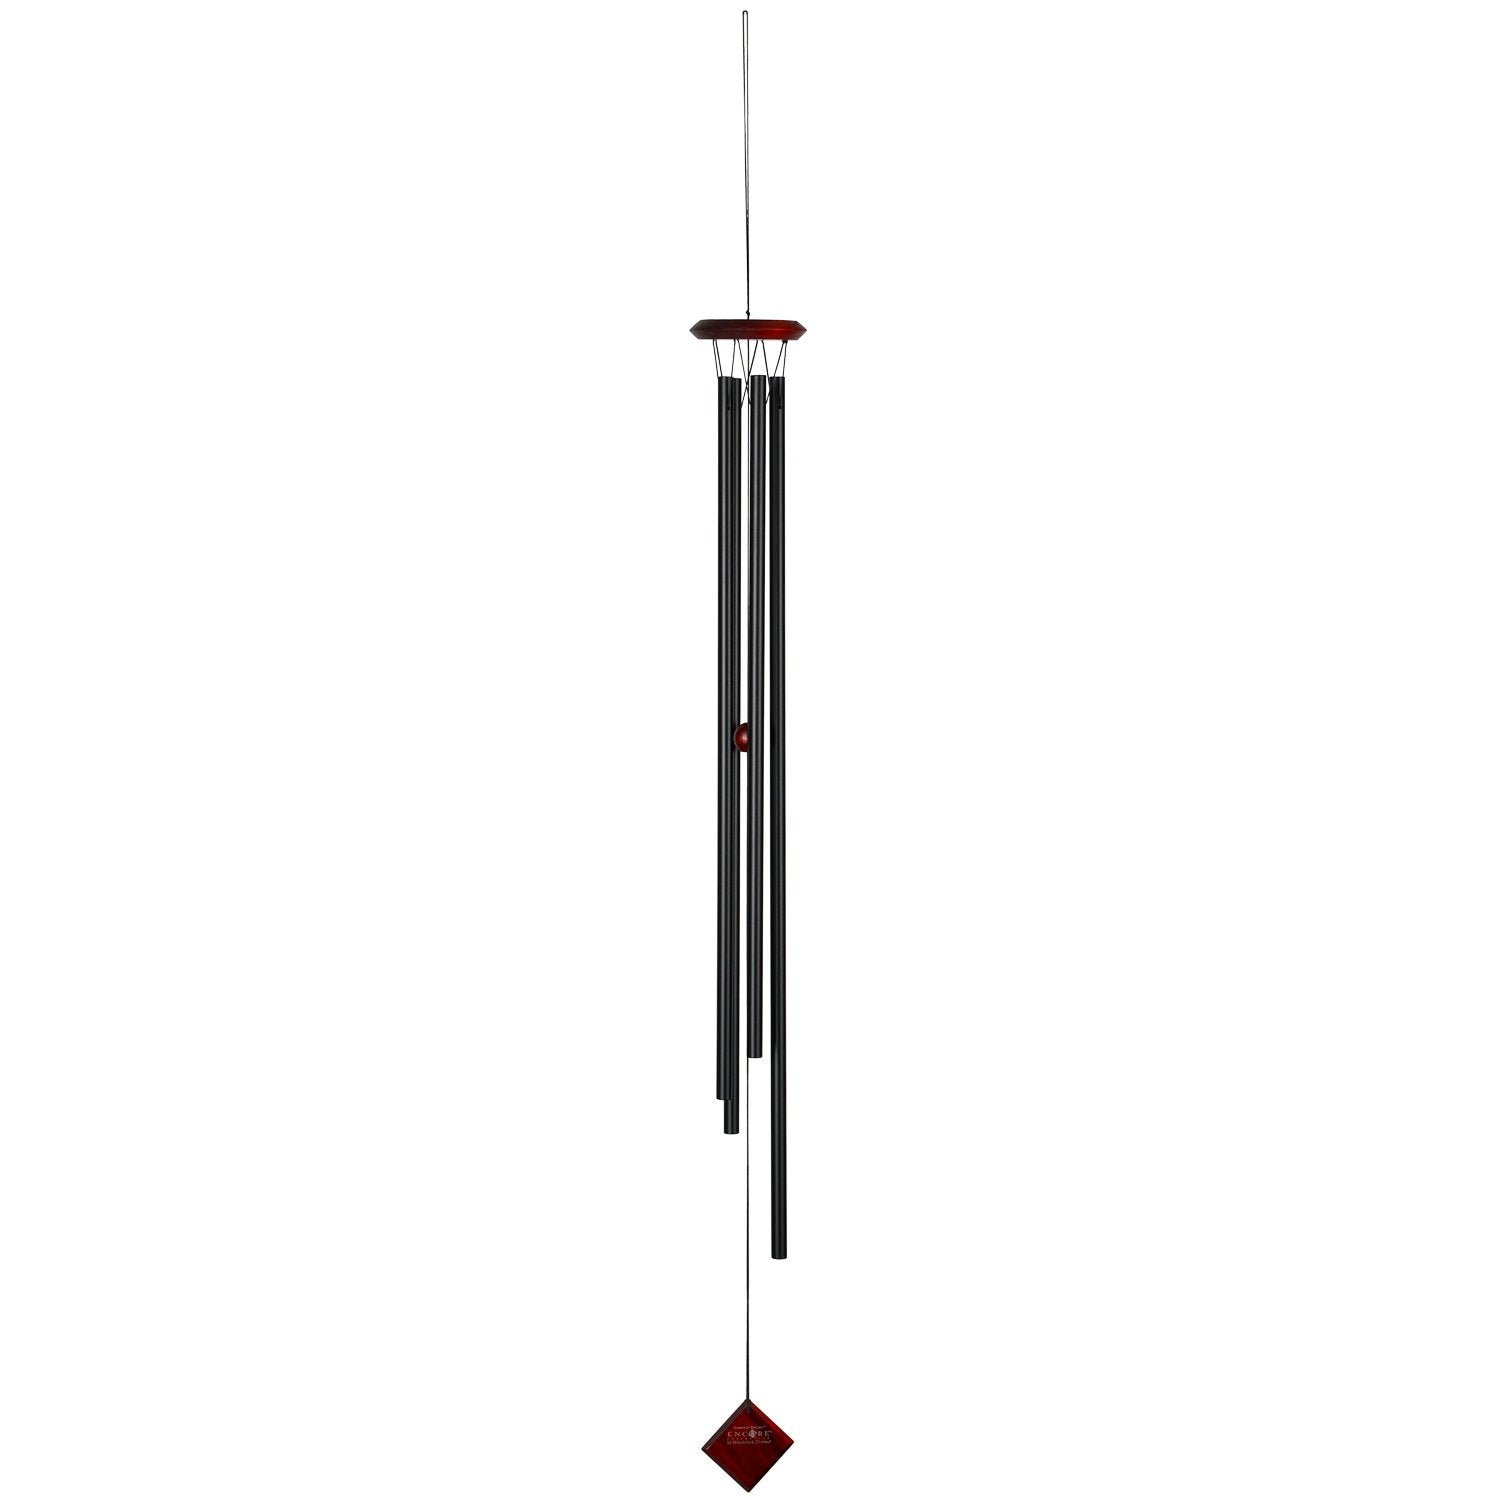 Encore Chimes of Saturn - Black full product image